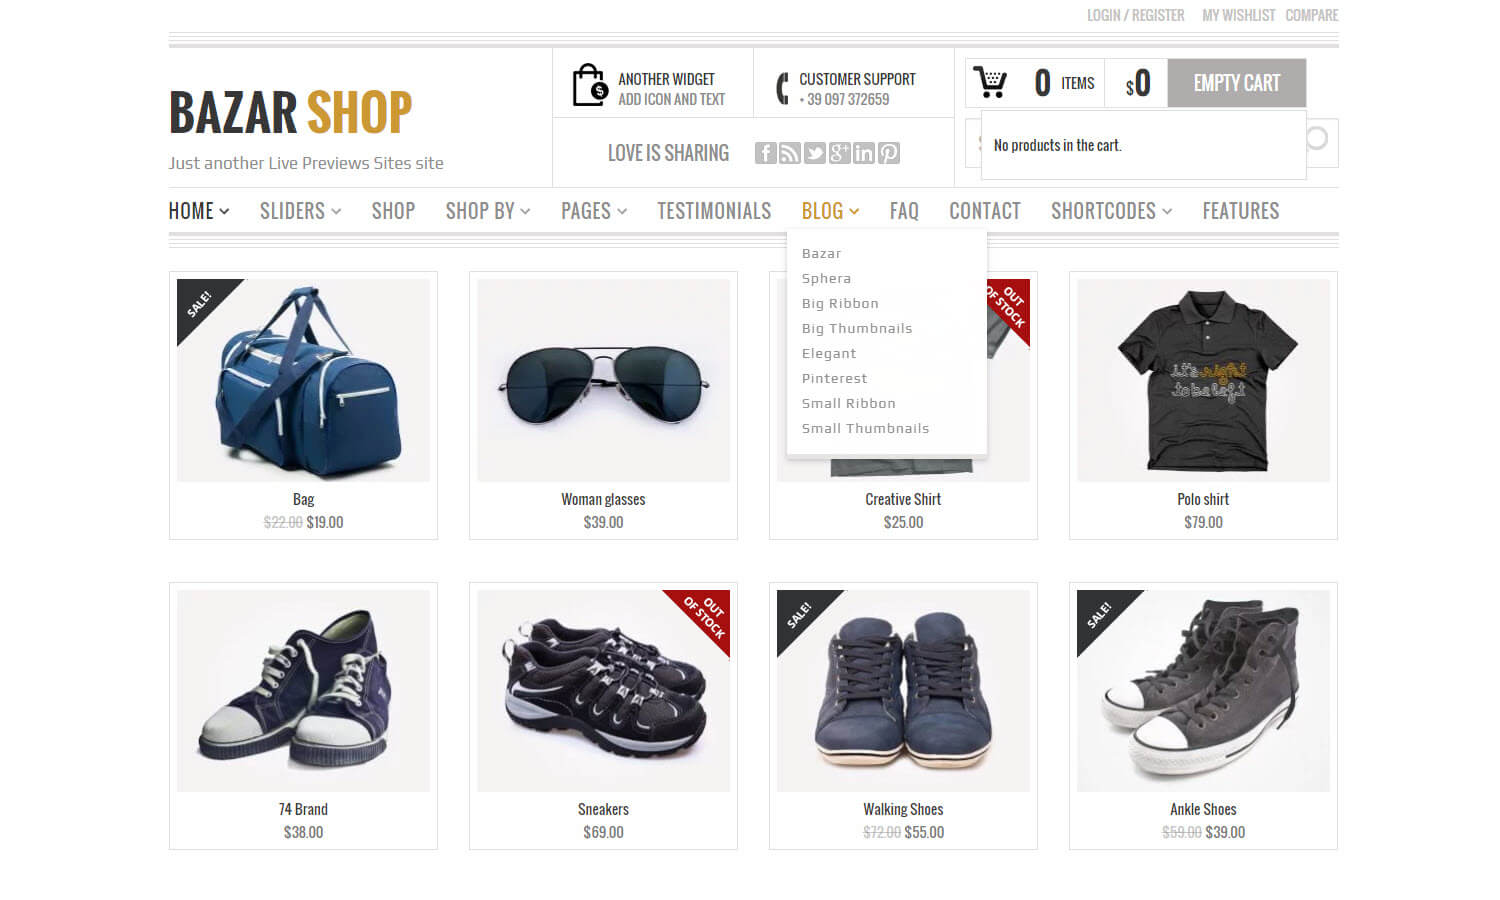 Bazar Shop screenshot